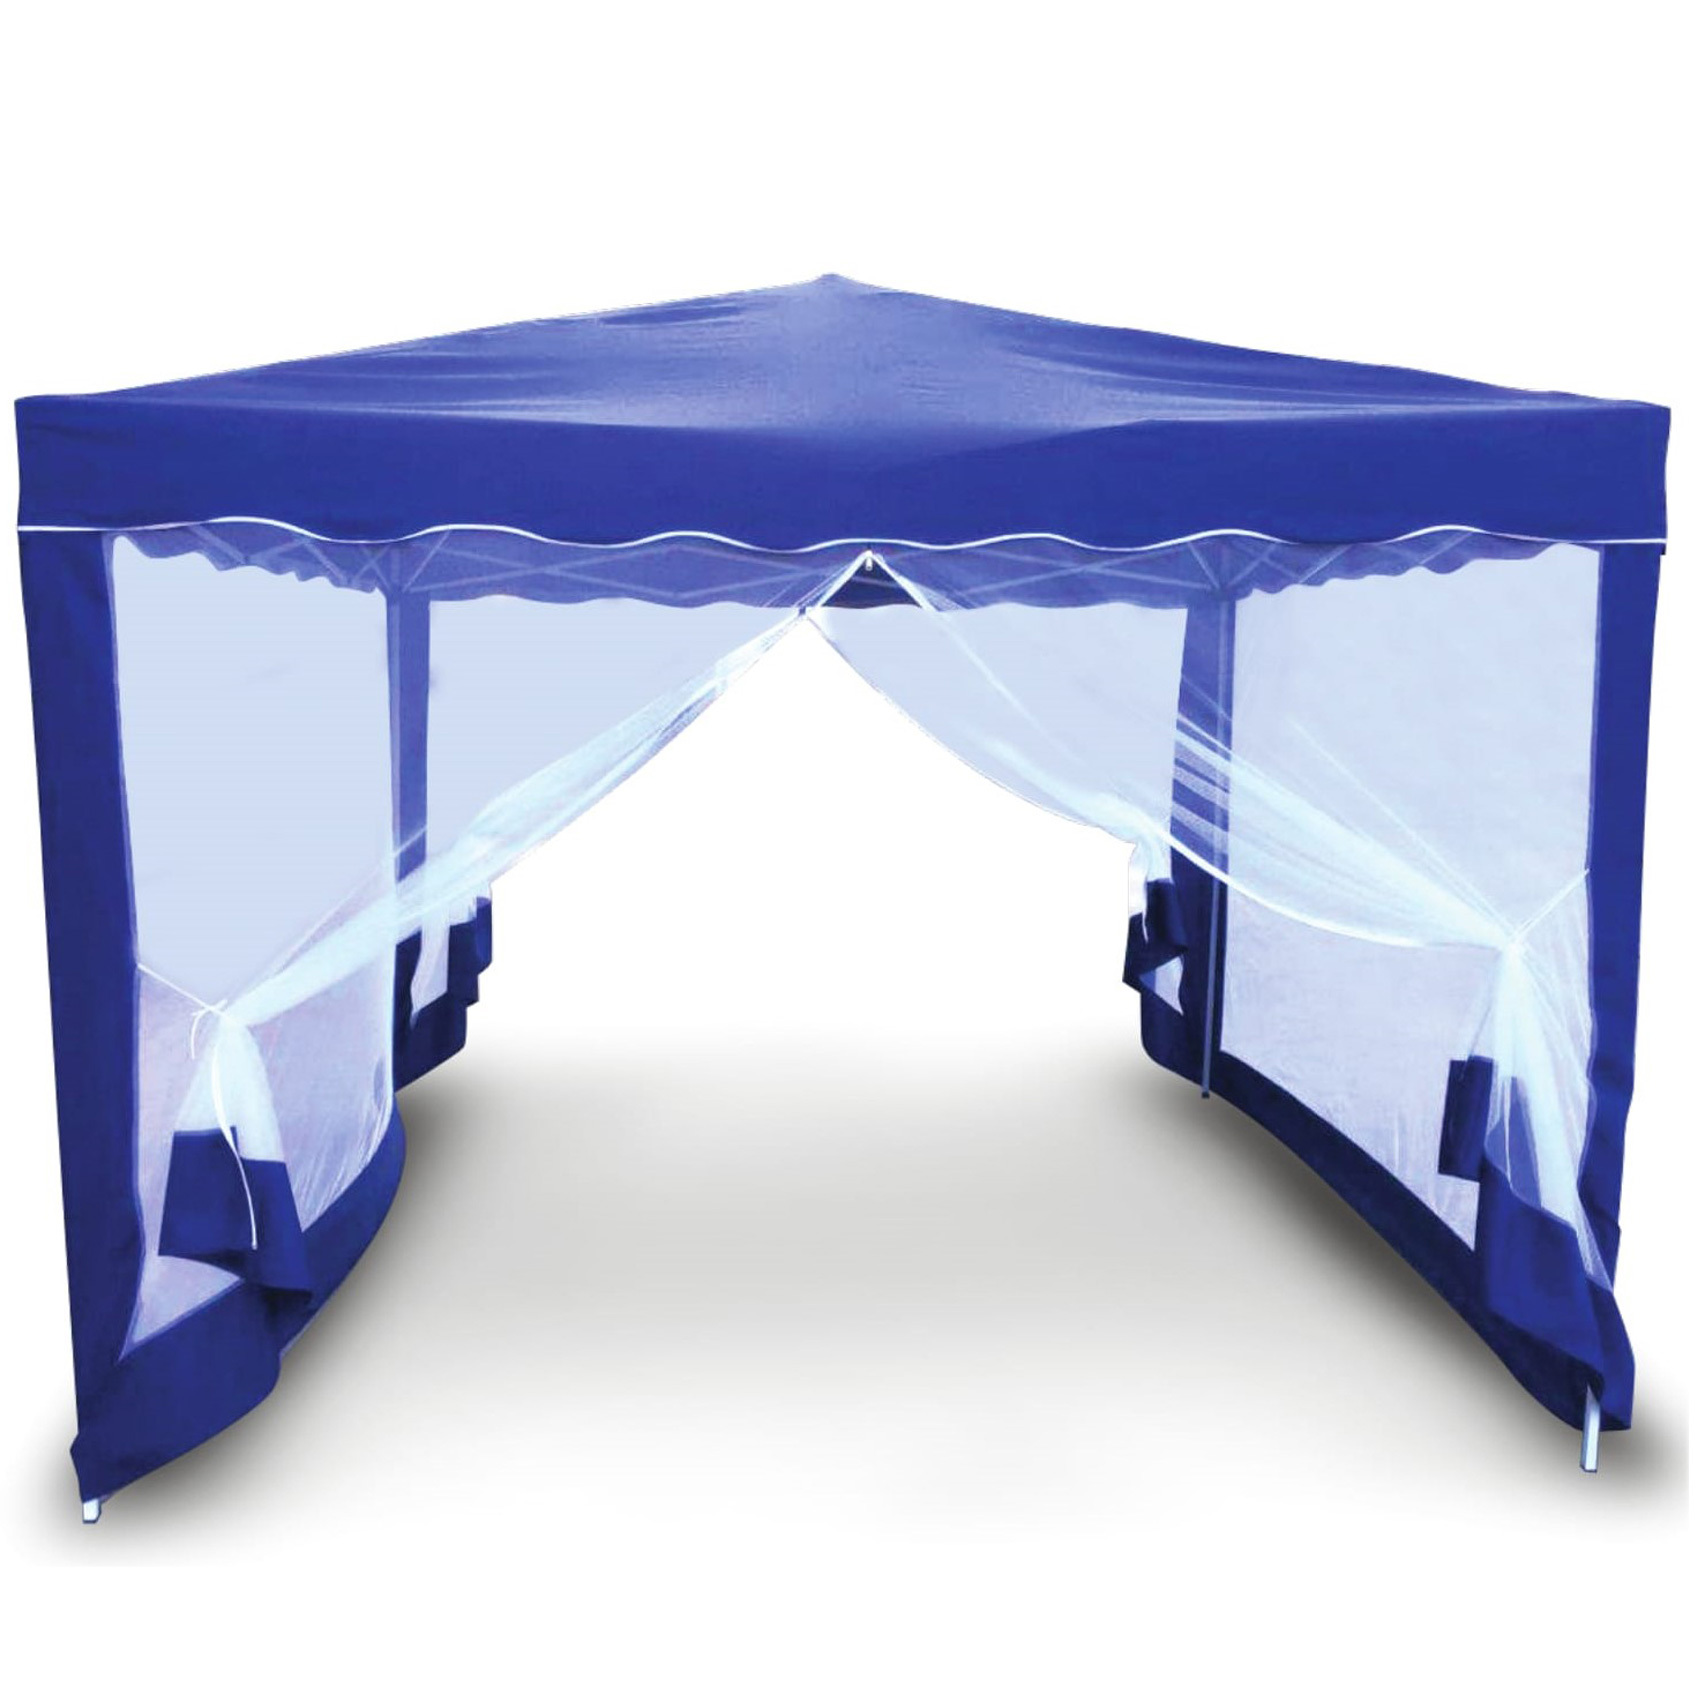 PARTY TENT 3X3X2.5M W/MOSQUITO NET